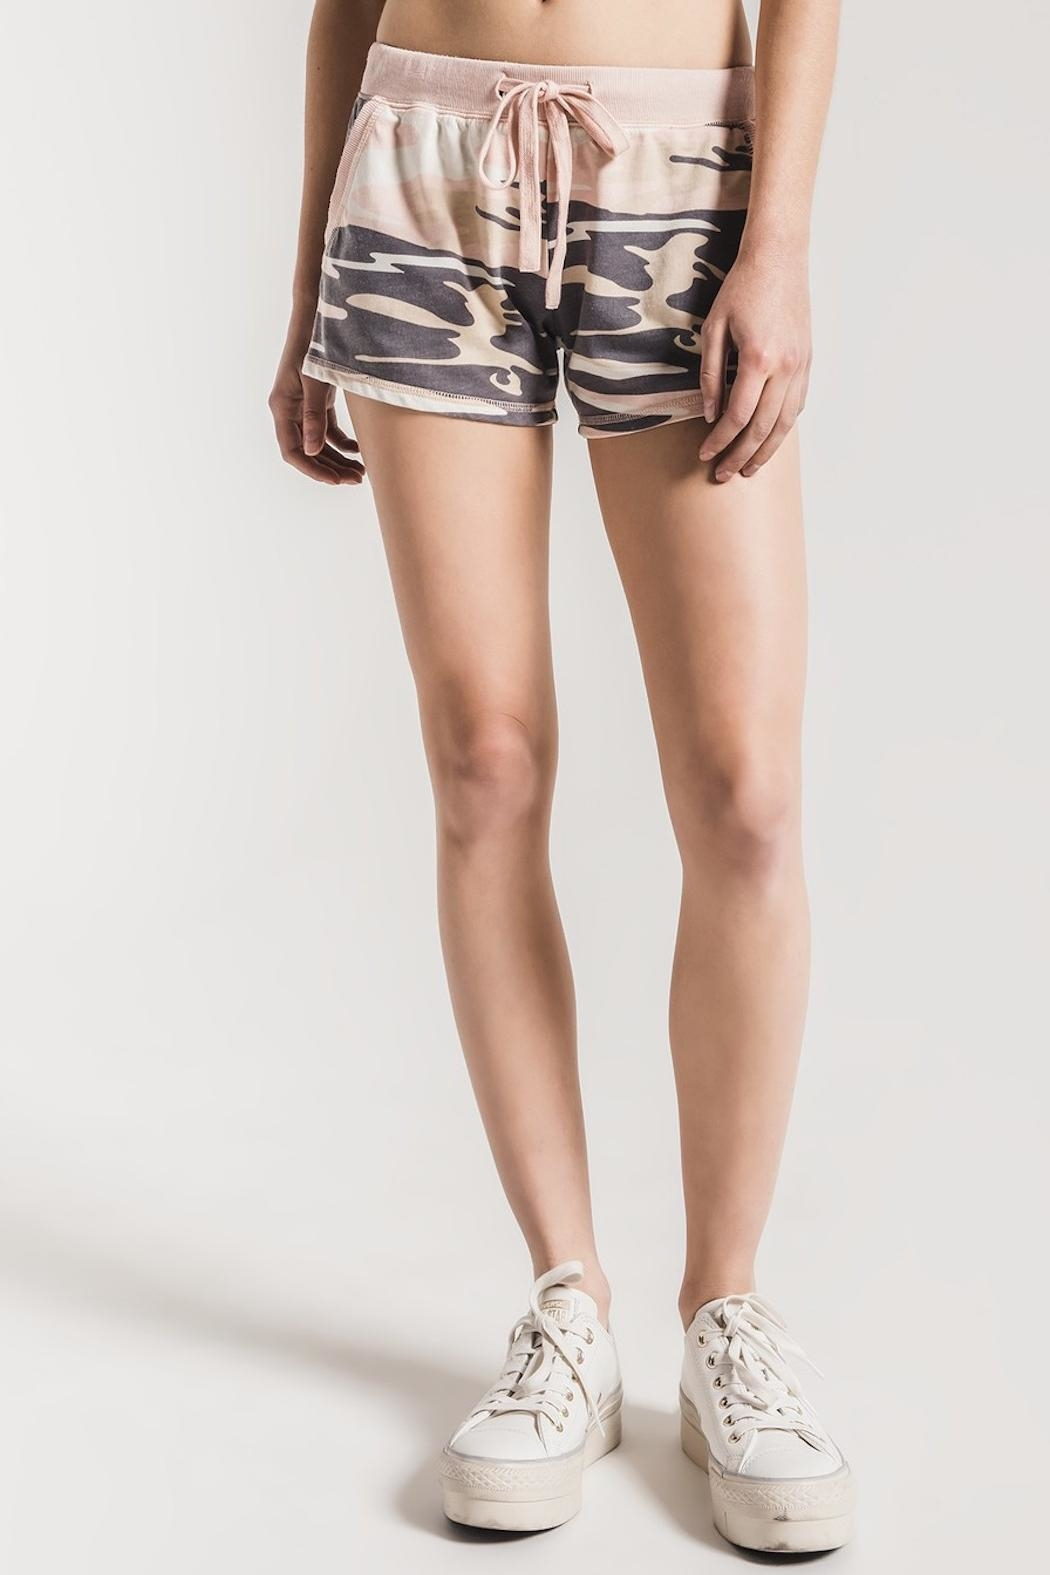 z supply Pink Camo Shorts - Front Full Image